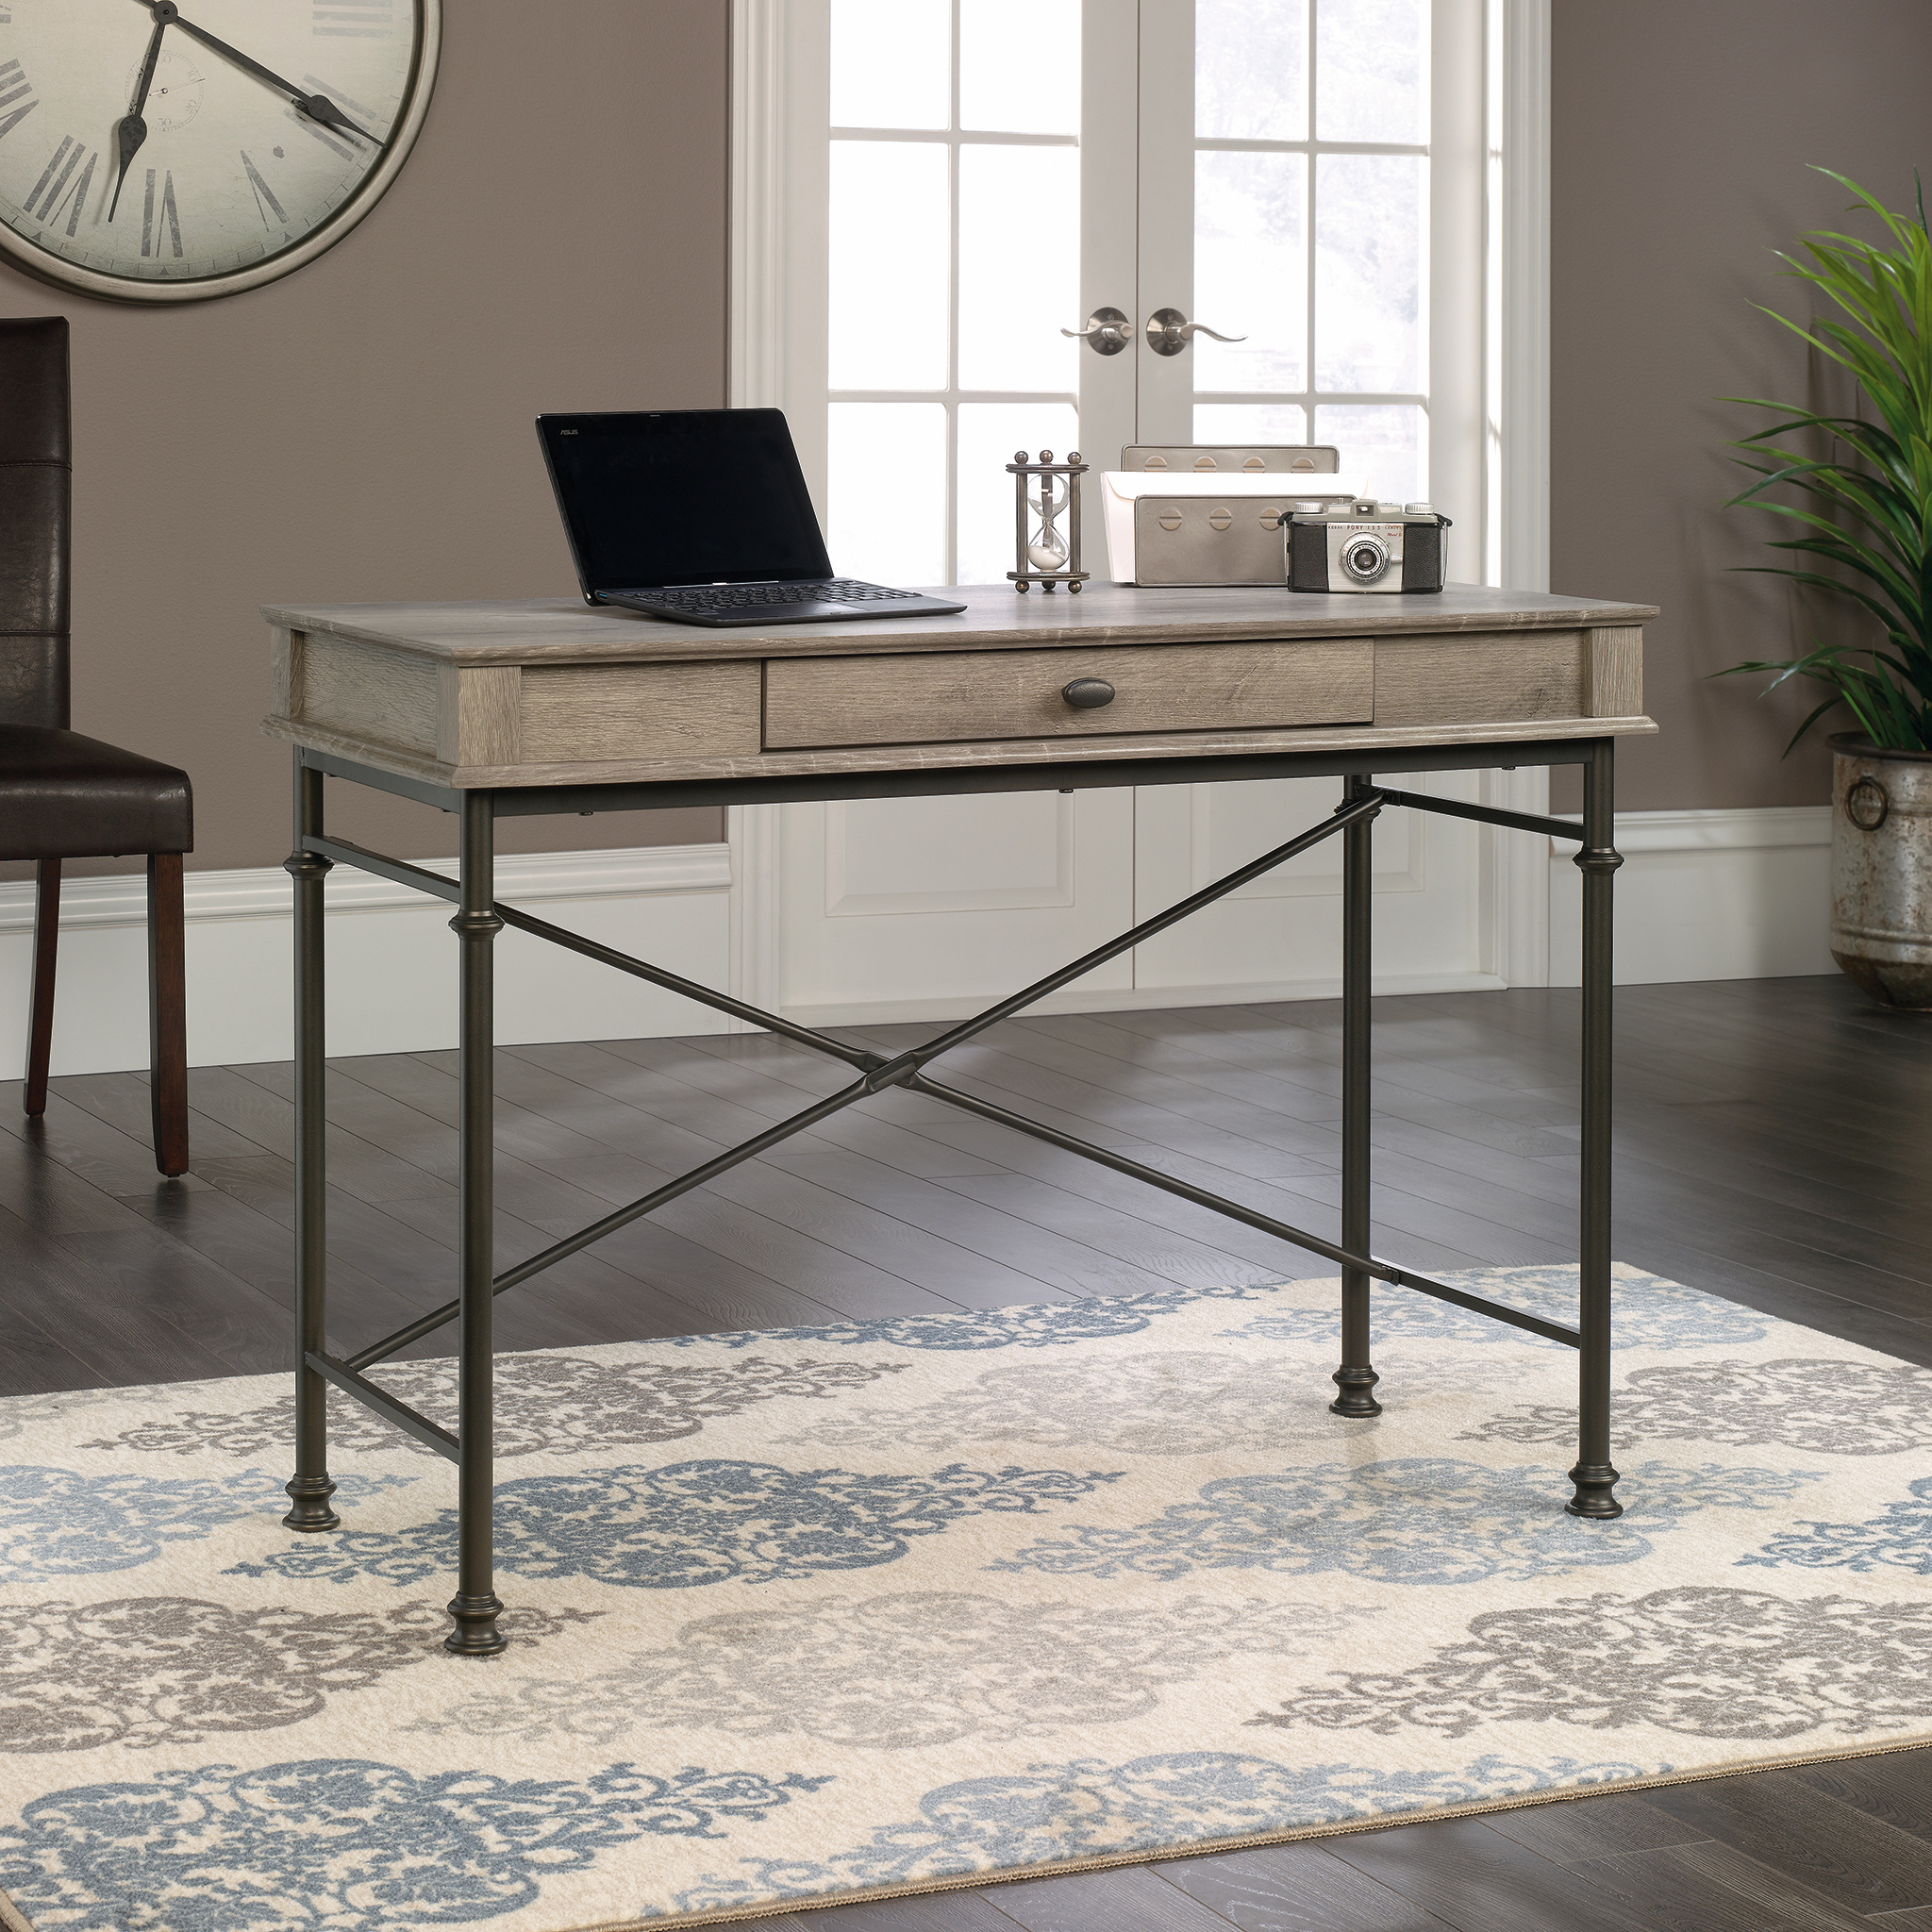 Teknik Office Canal Heights Console Desk in Northern Oak Finish